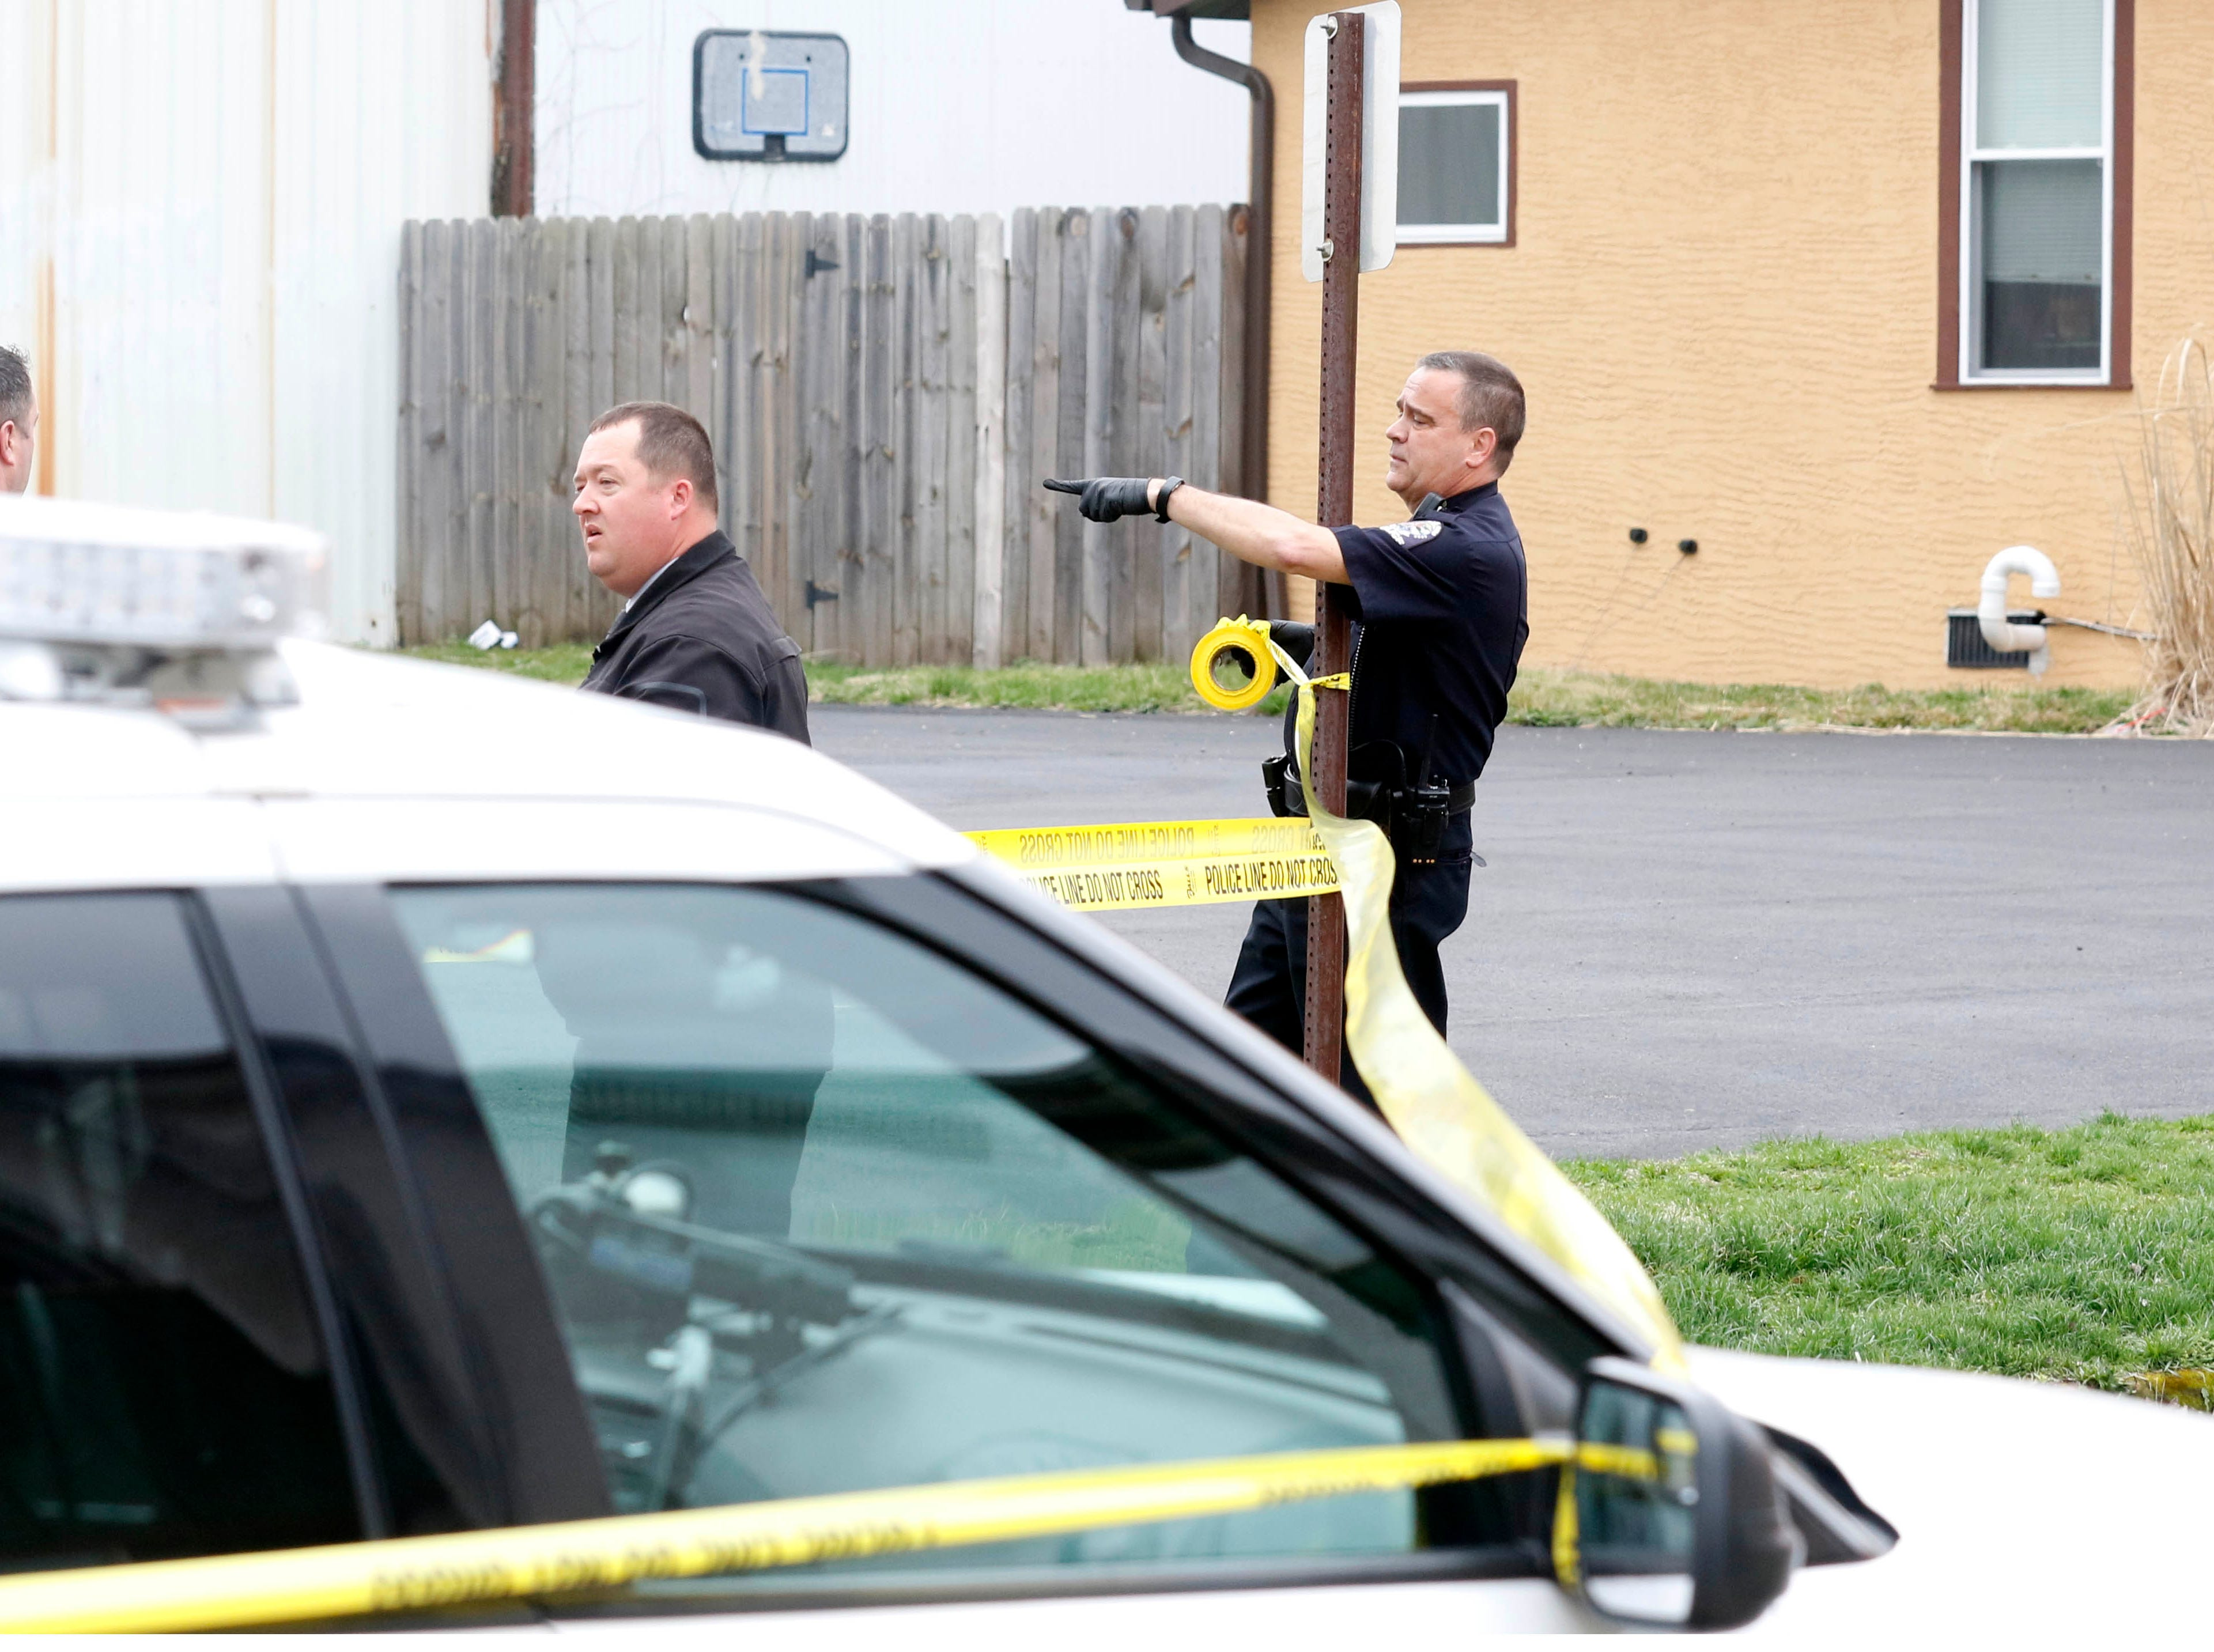 Lancaster police officers tape off West Walnut Street as they investigate a stabbing at an apartment building Monday morning, April 8, 2019, in downtown Lancaster. One man died in the stabbing.